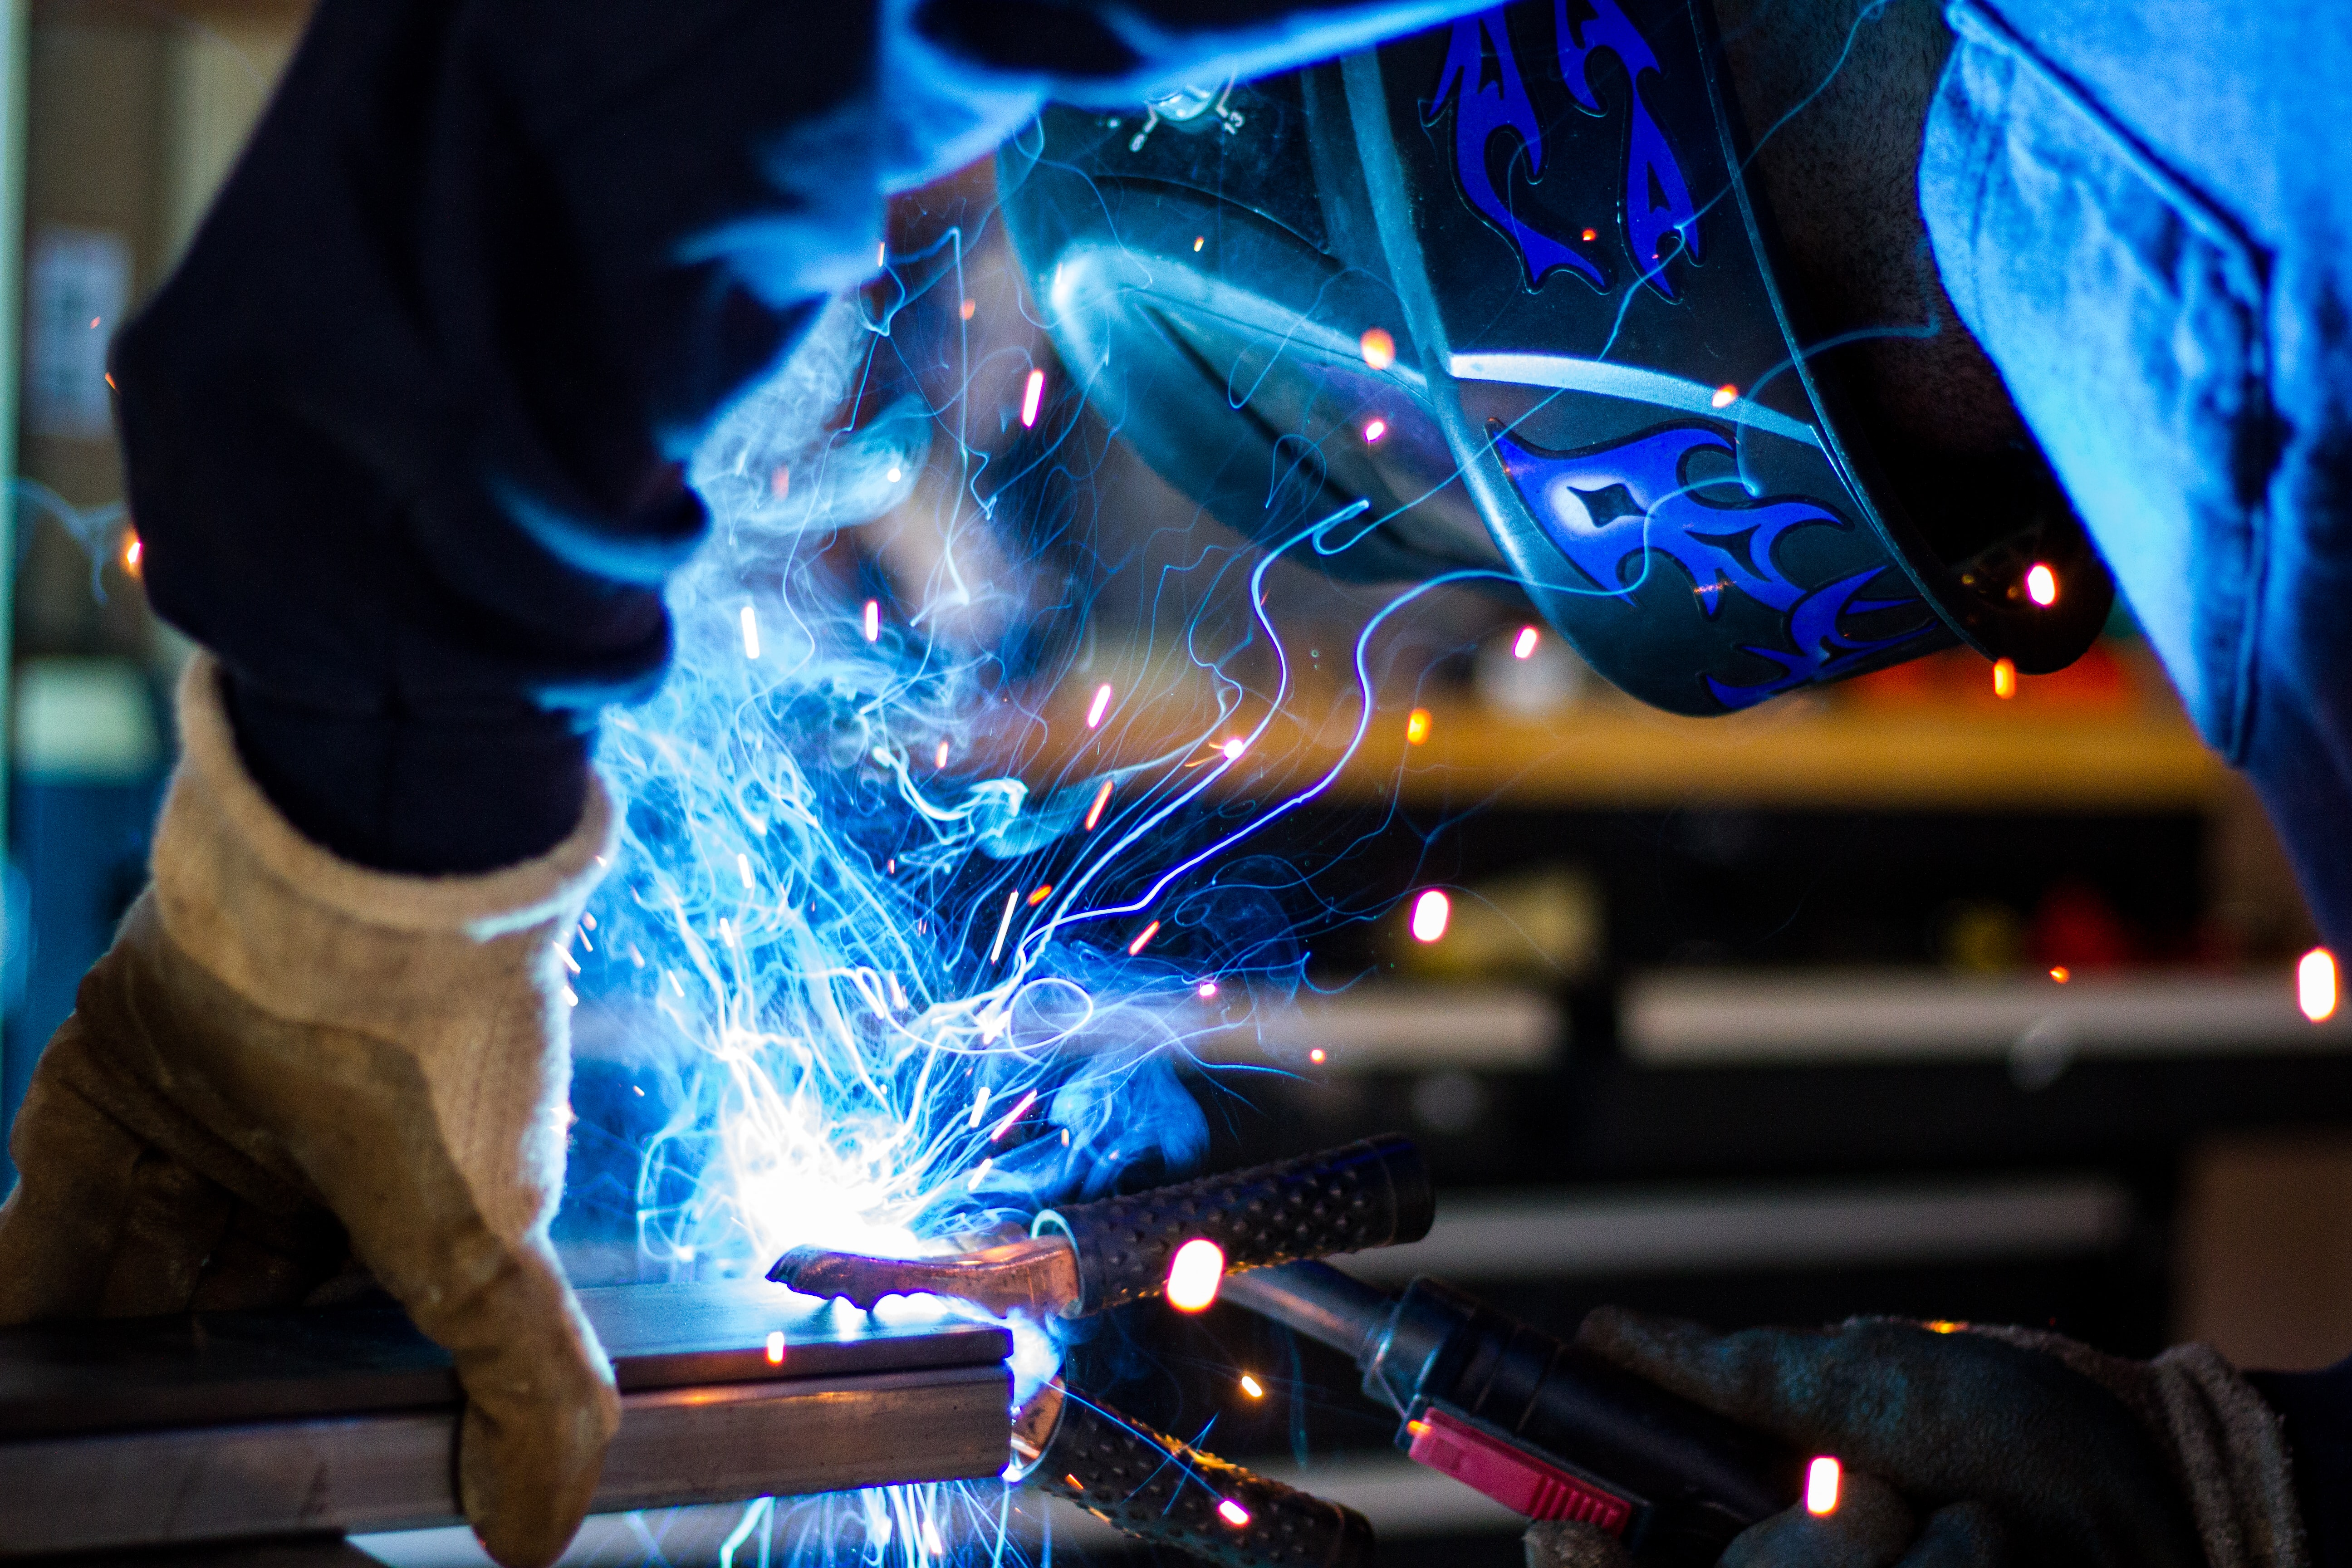 Blue sparks and flames over a piece of metal with a welder leaning over it